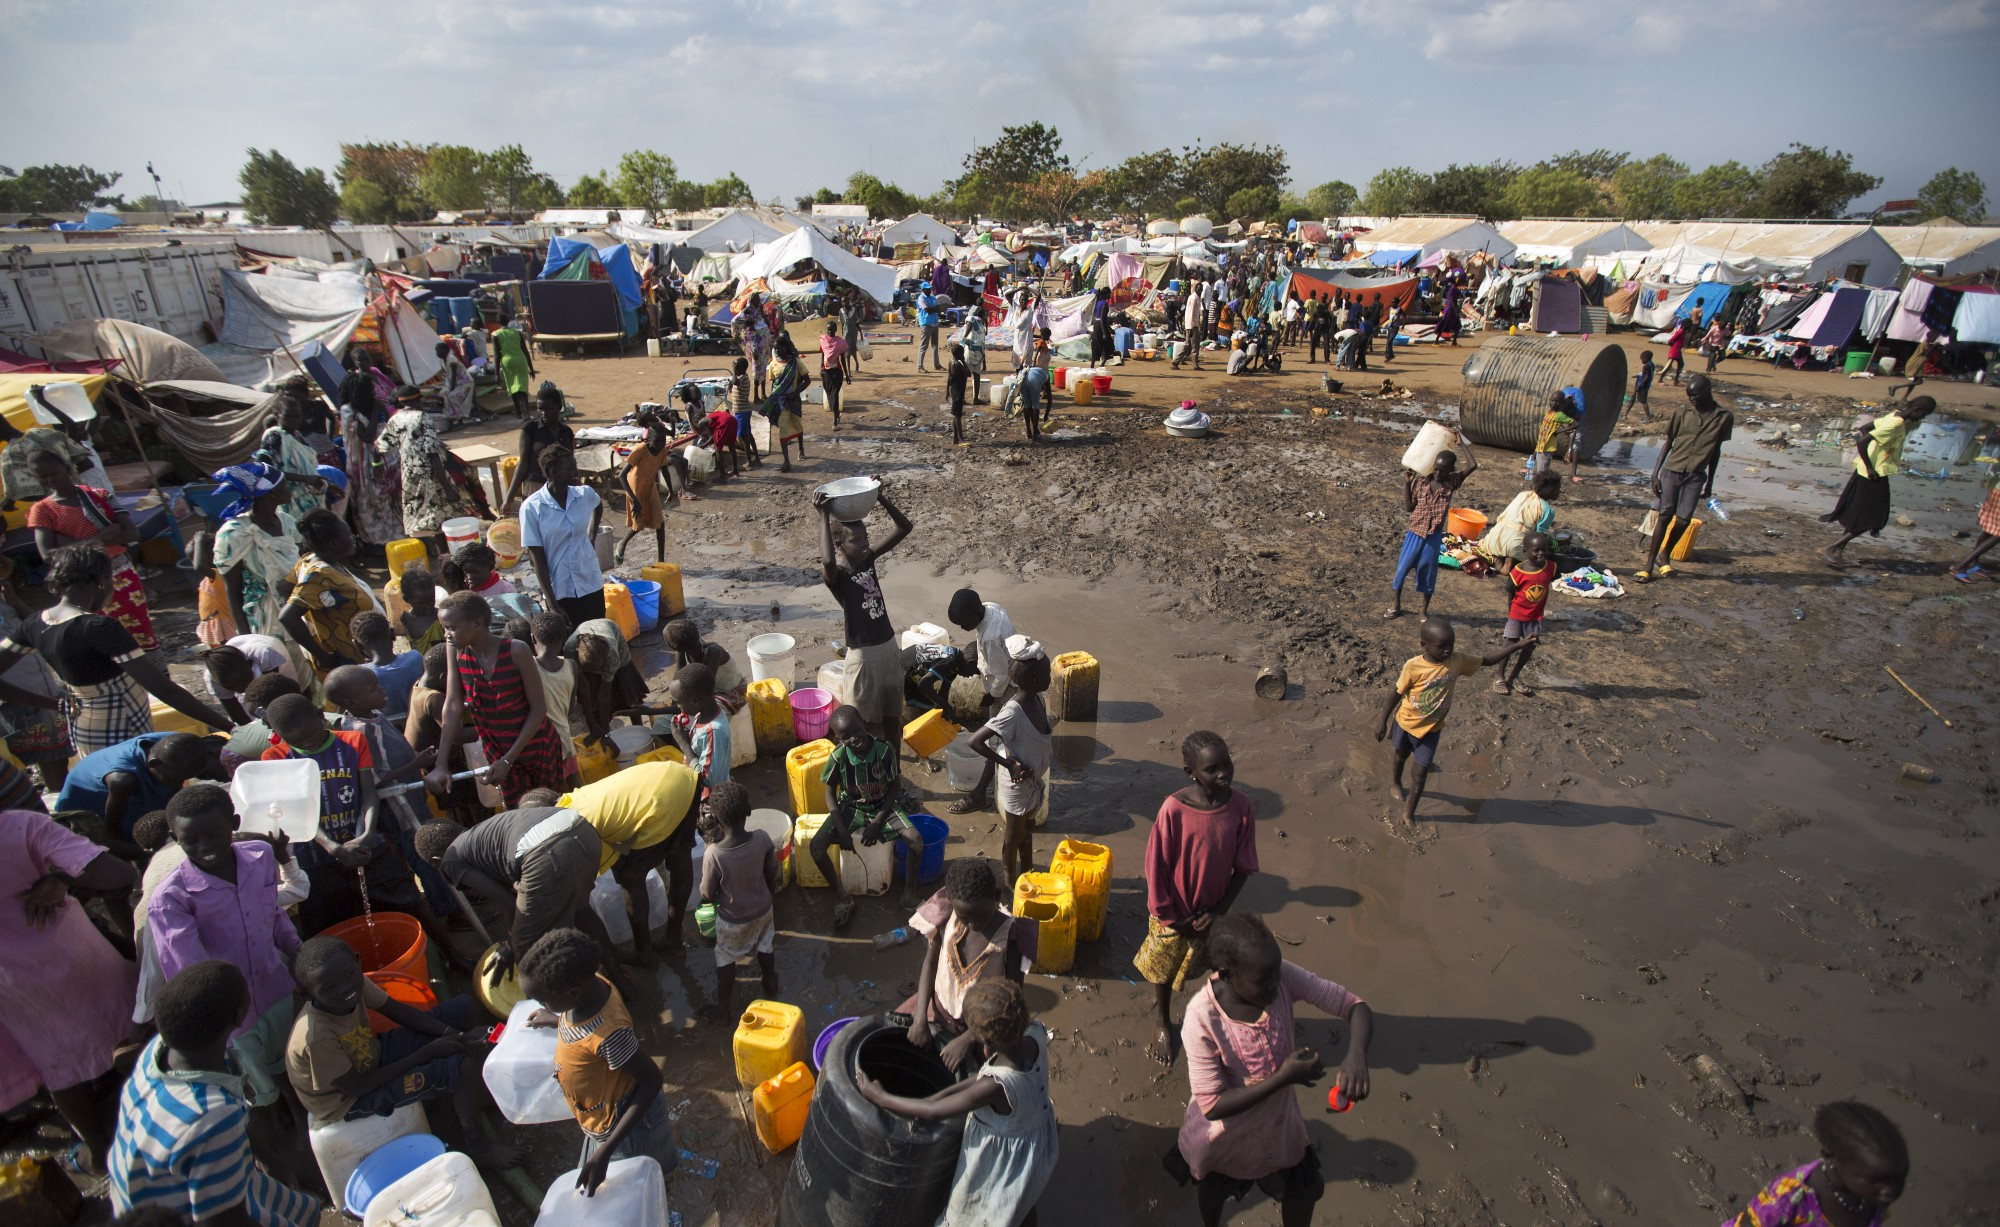 sudanese civil war As the civil war rages on in south sudan, life becomes increasingly unbearable for the millions of civilians who are affected by the violence.